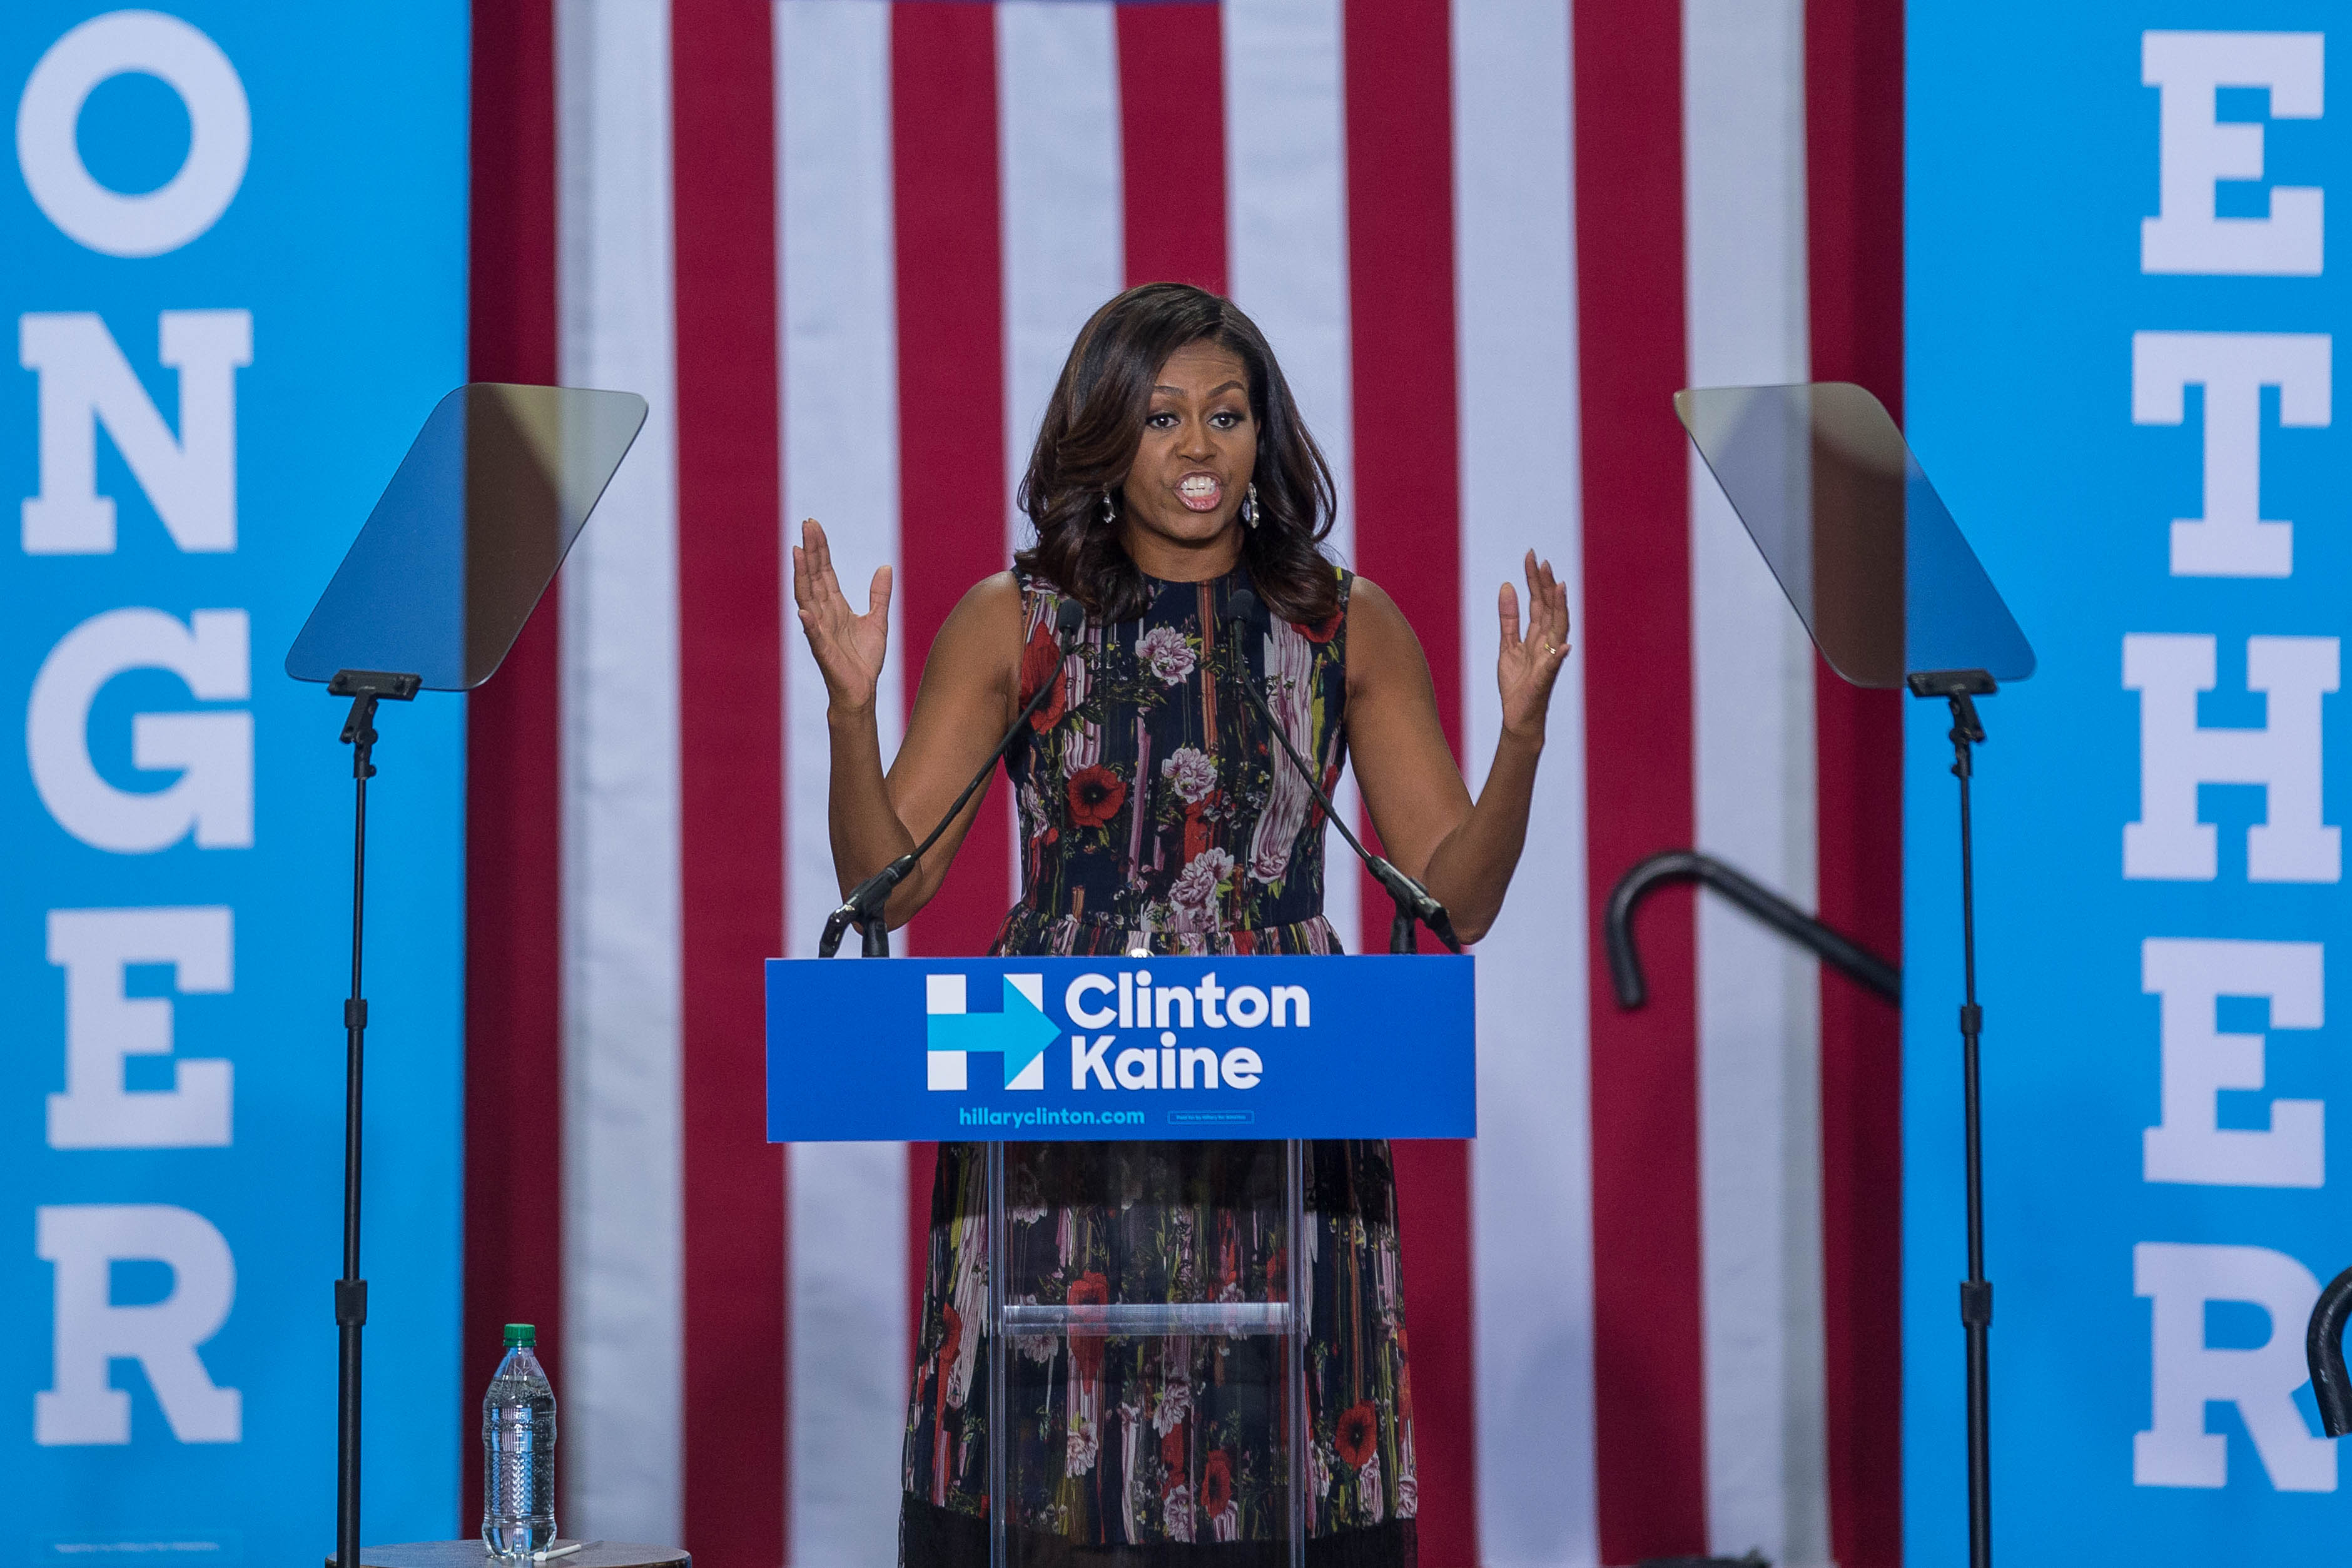 hillary clinton quotes michelle obama at the debate her words